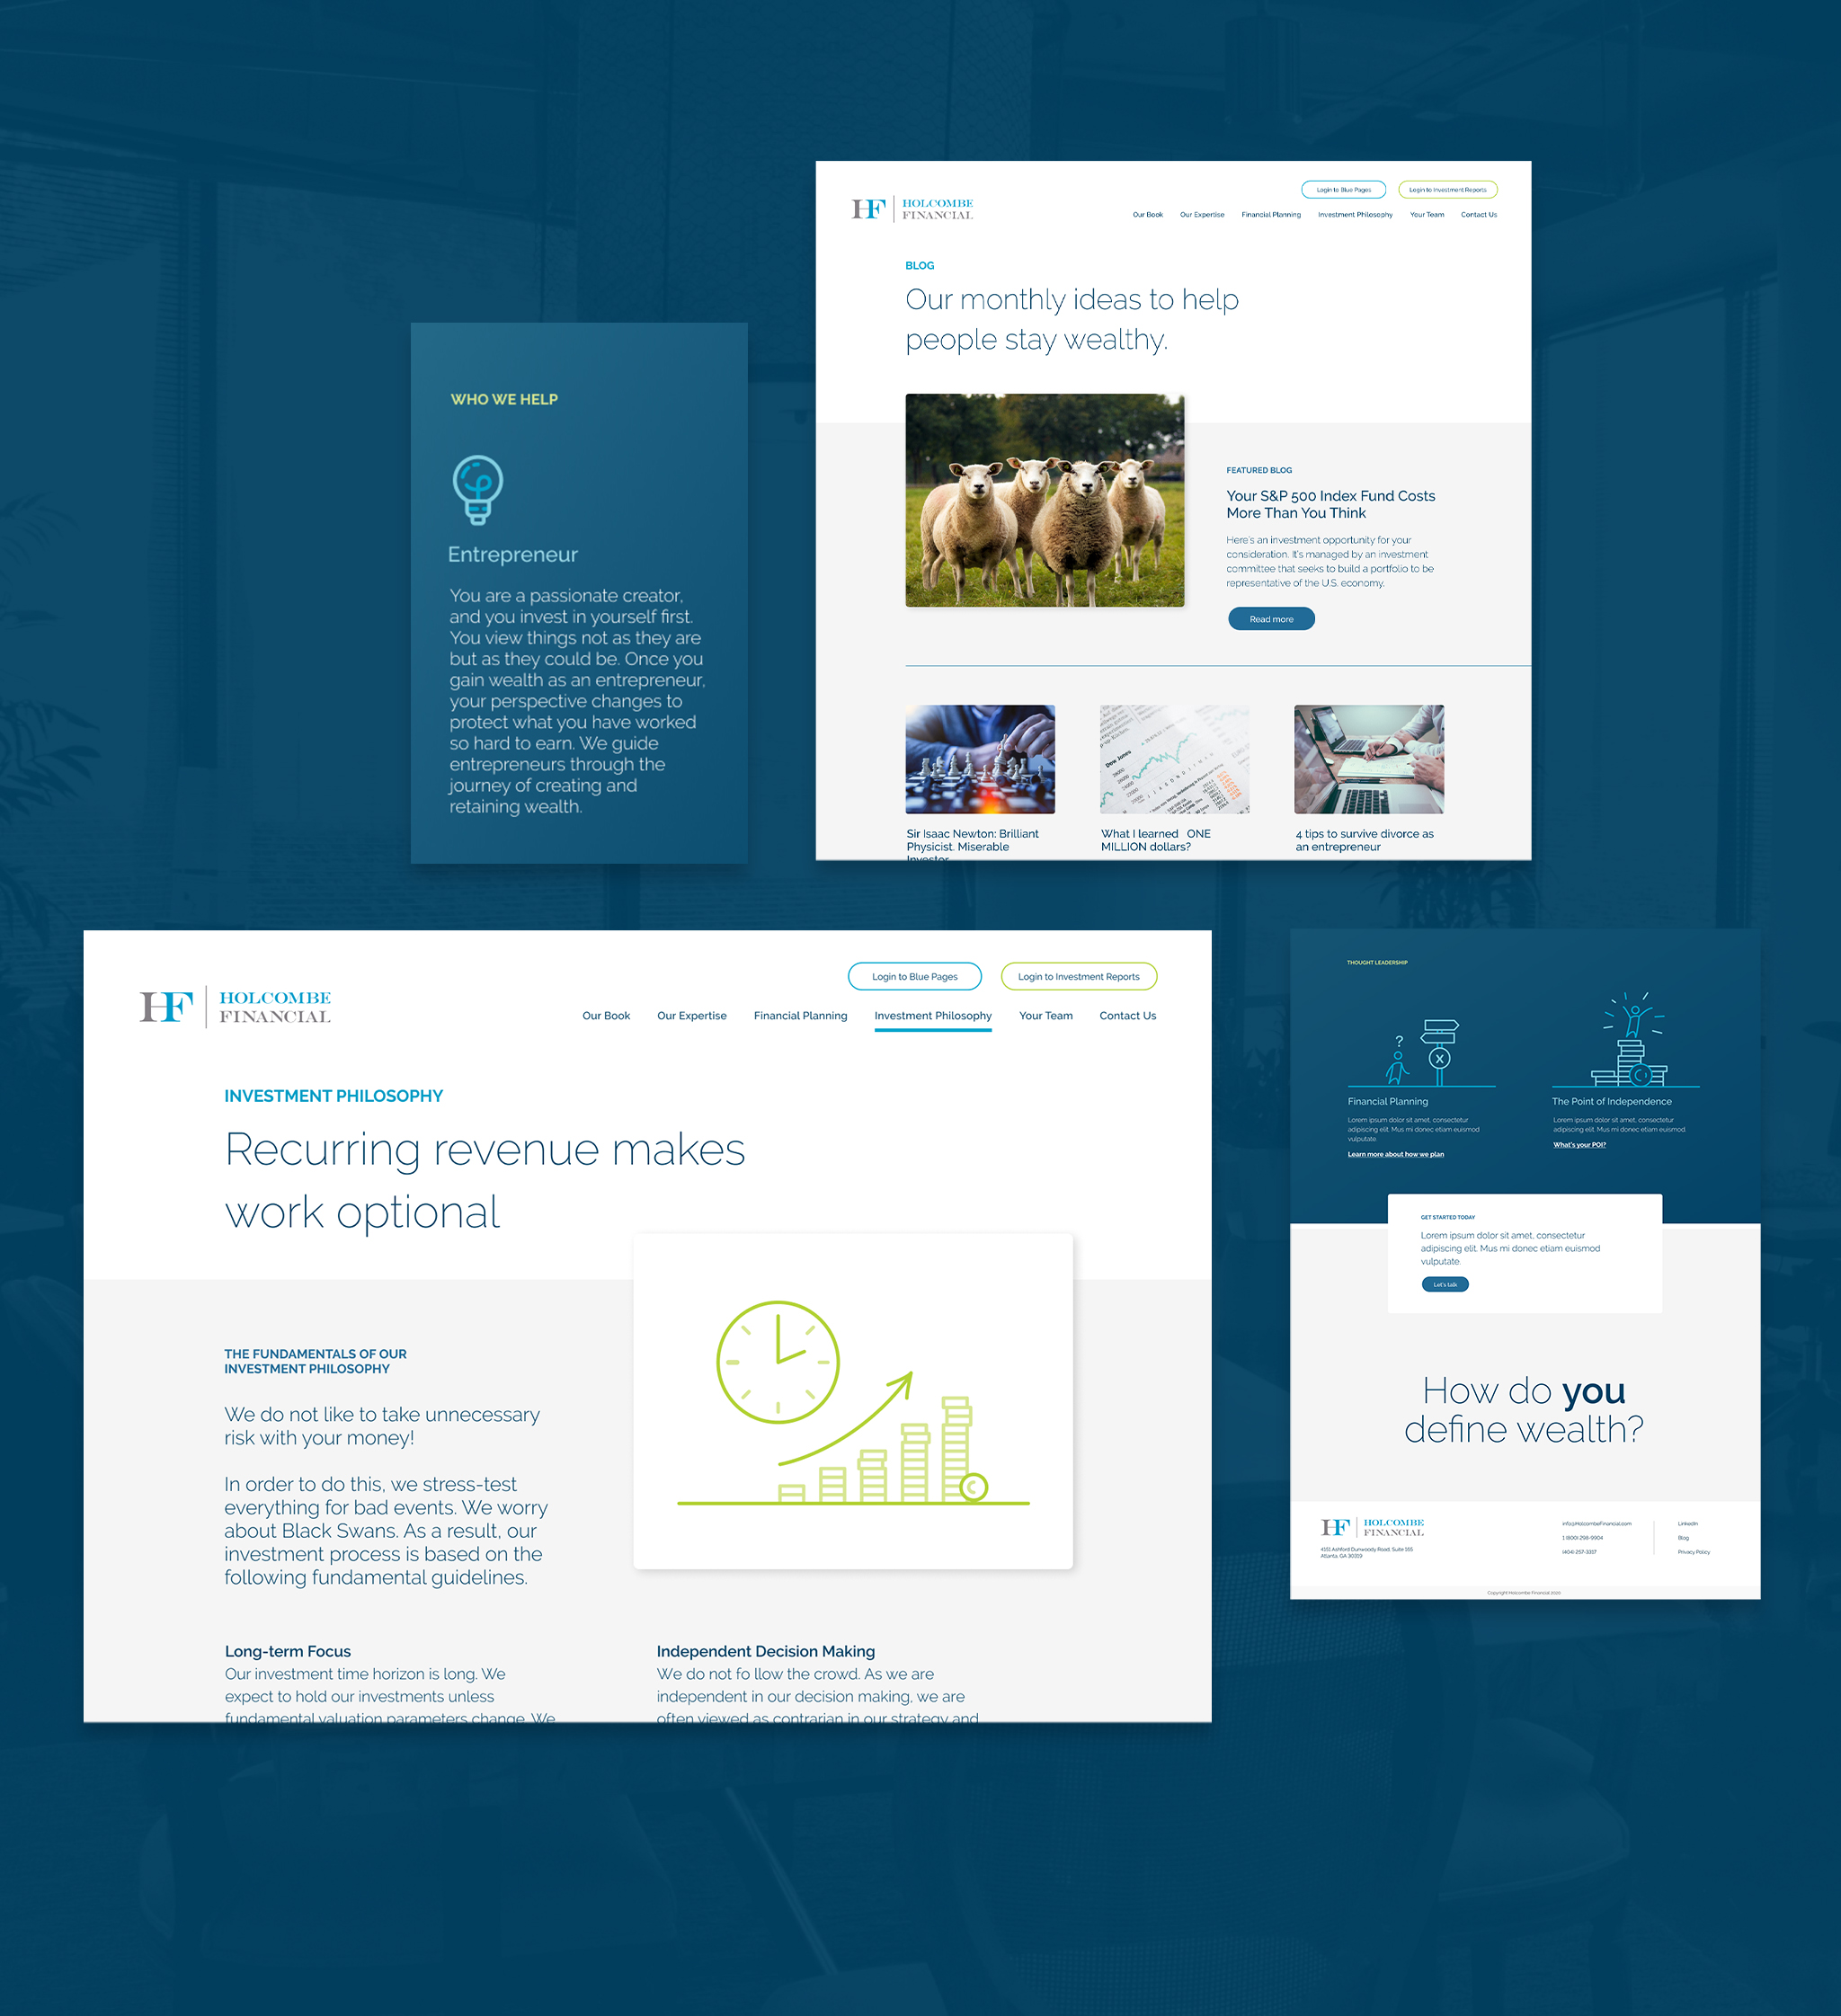 Holcombe Financial Website - flat images of page designs